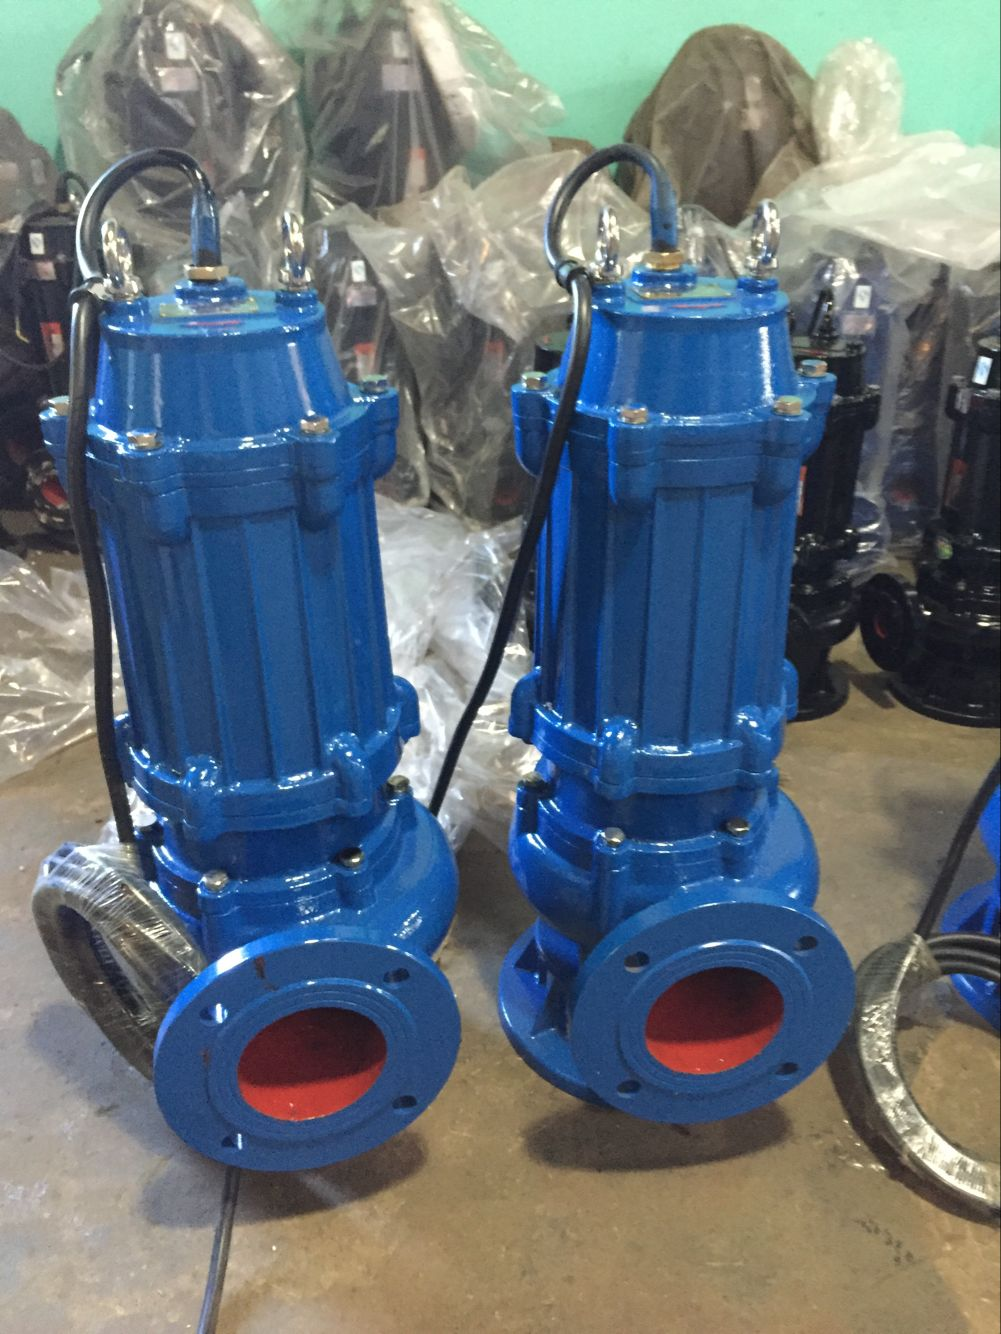 6 inch waste water pump submersible sewage pump for drainage centrifugal waste pump